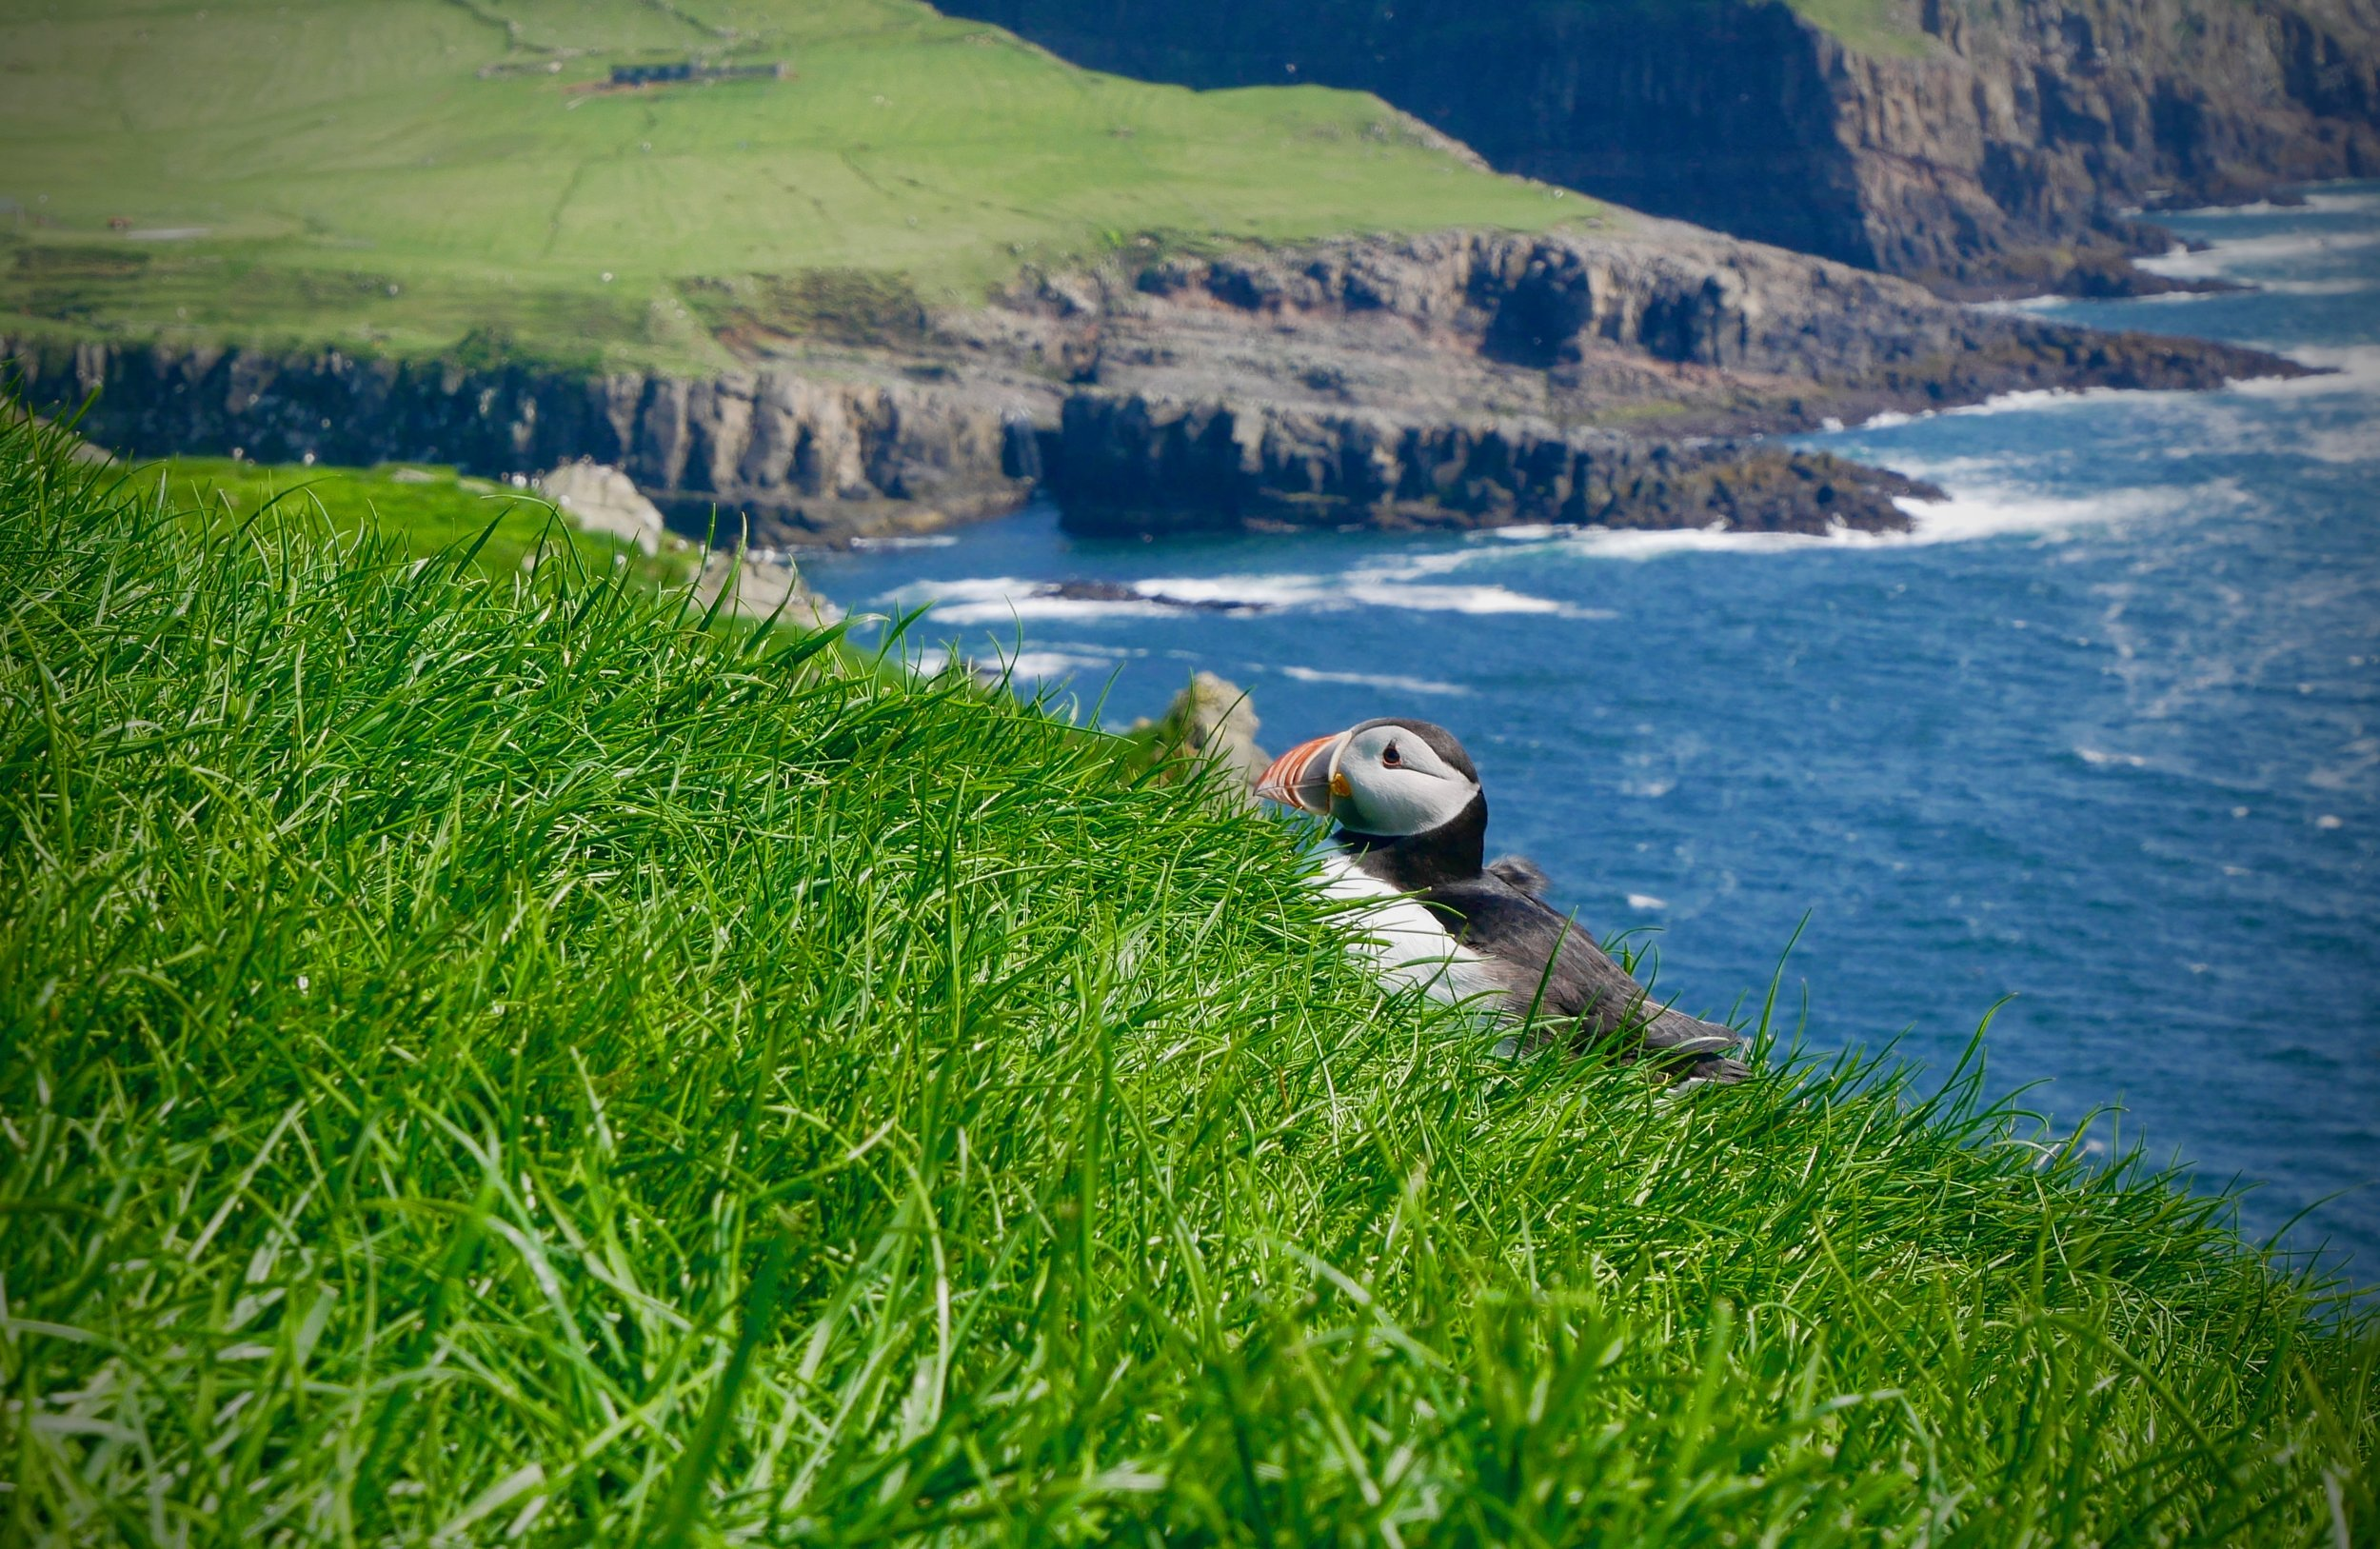 *Hiking with puffins, winding roads, and stunning scenery. -